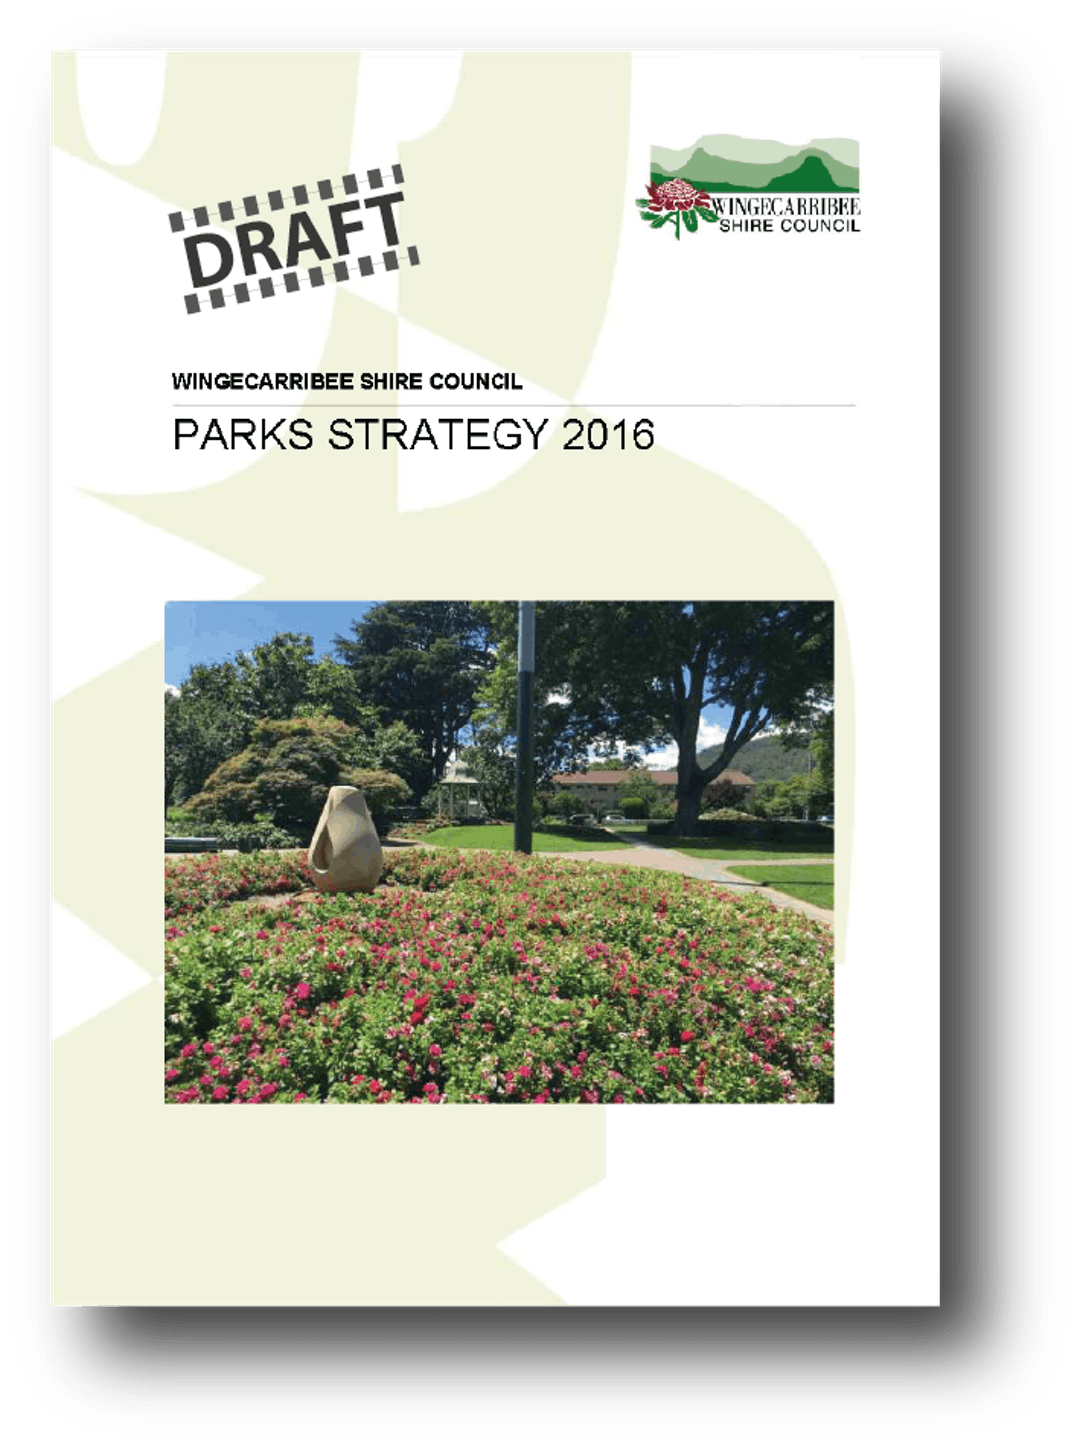 Cover of draft Parks Strategy 2016